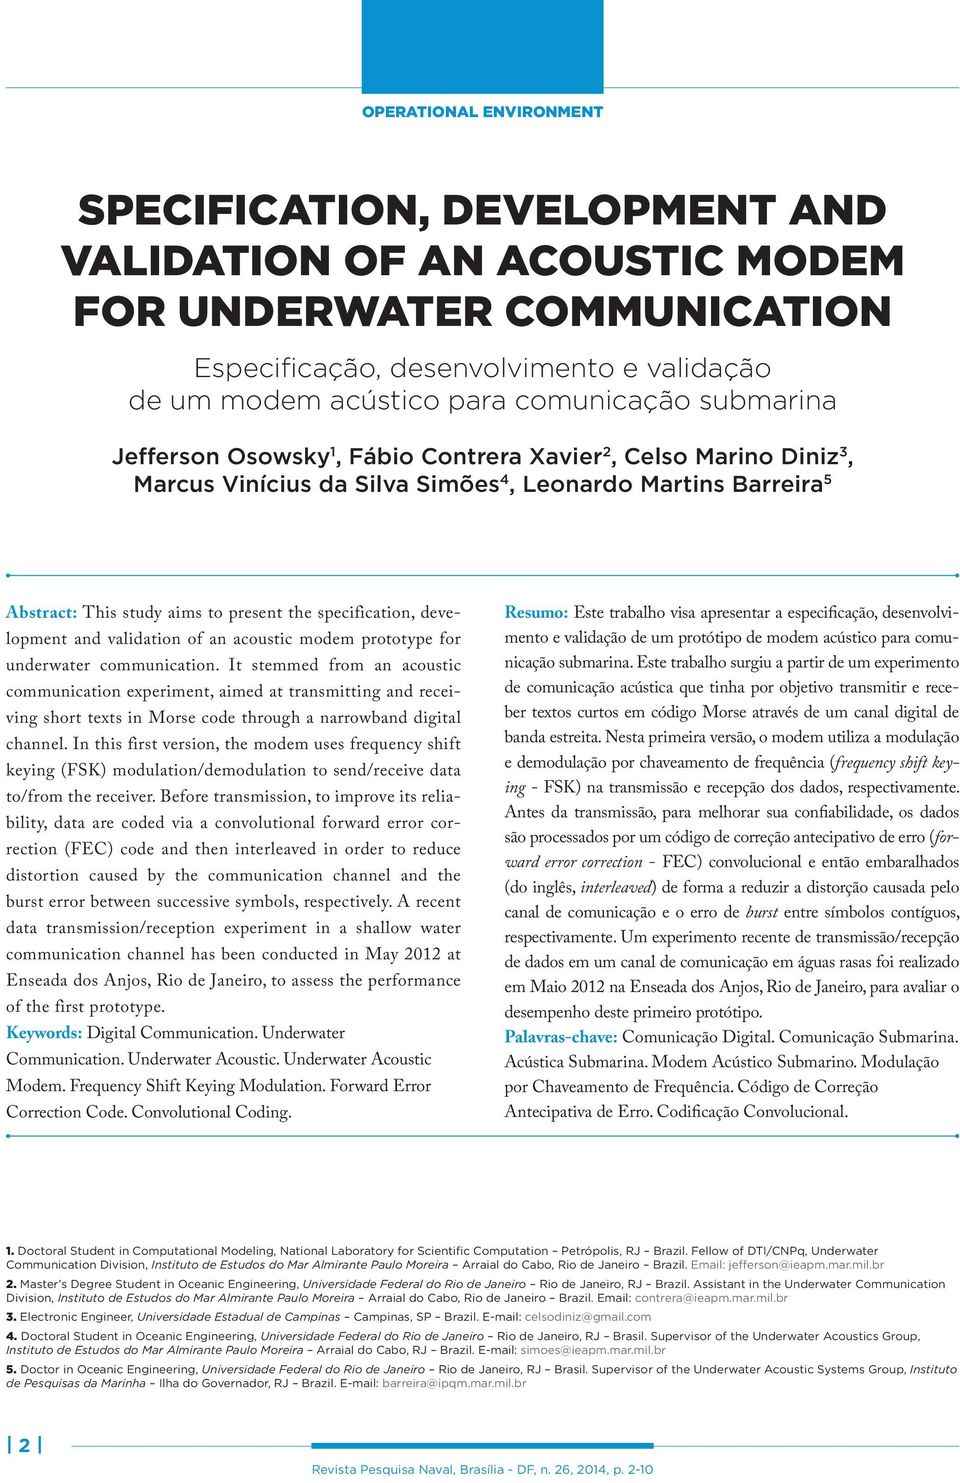 development and validation of an acoustic modem prototype for underwater communication.